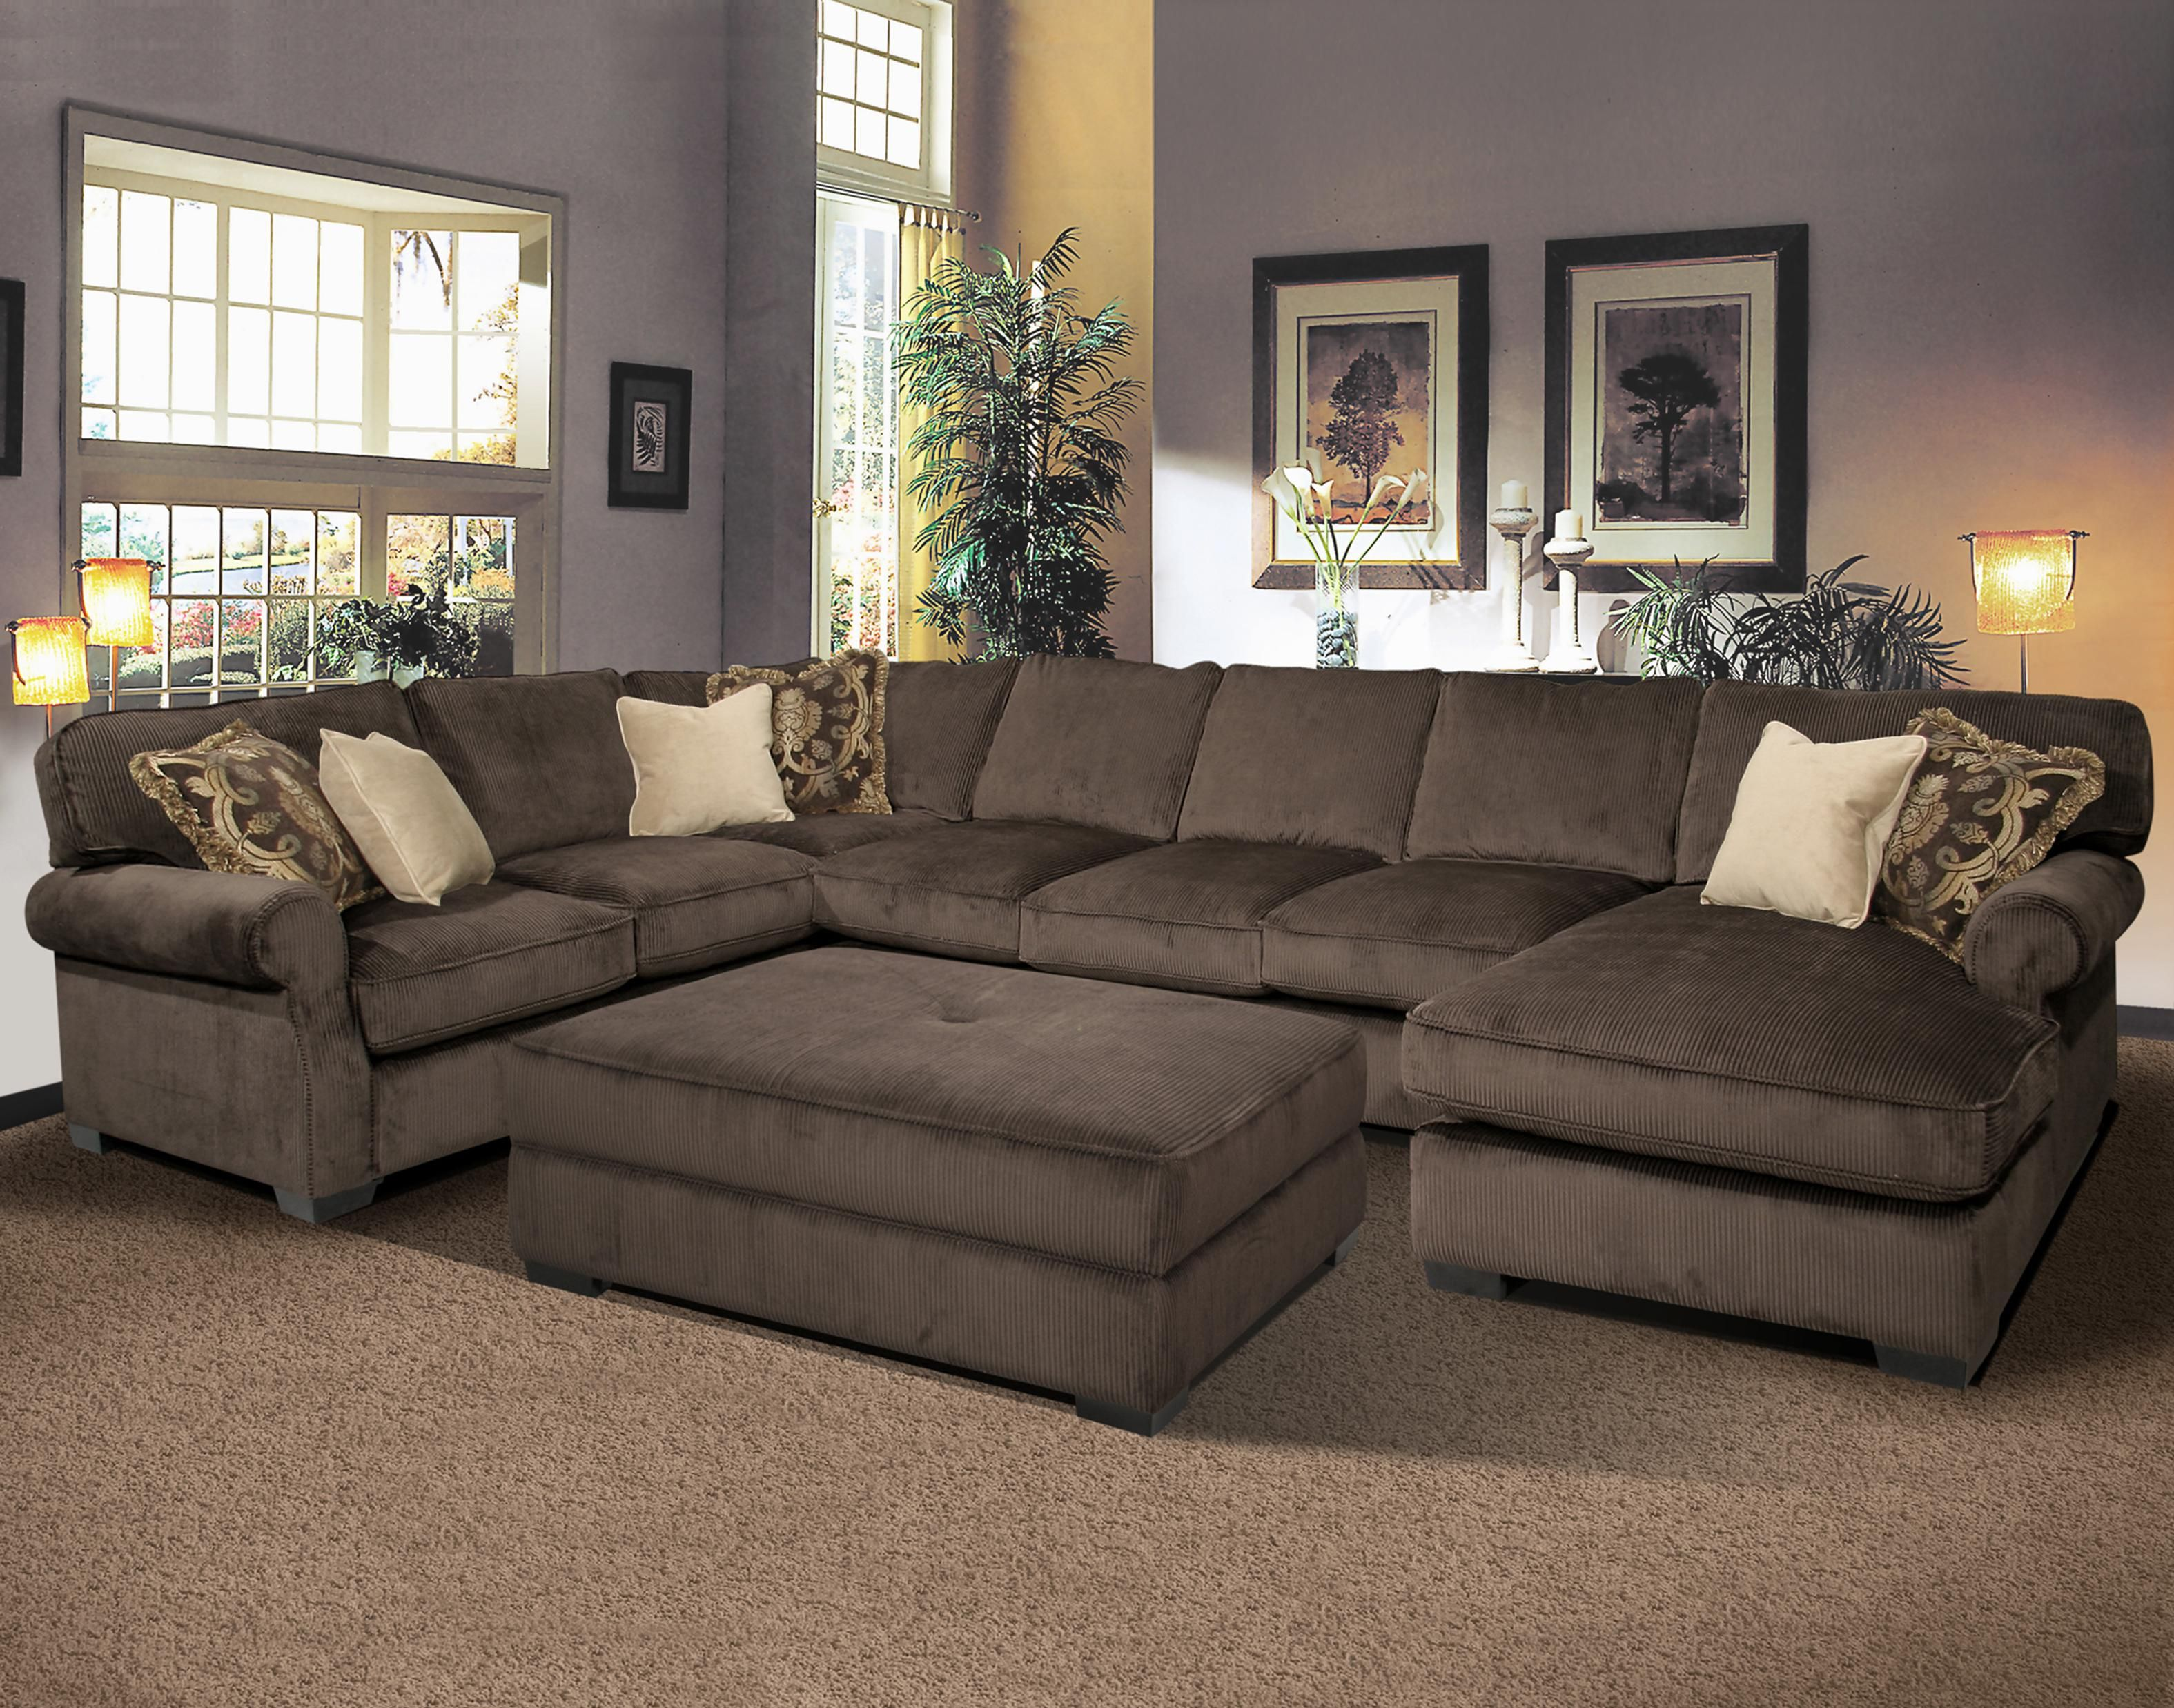 bed size ikea microfiber sofa sectional with leather sleeper apartment recliners queen sofas